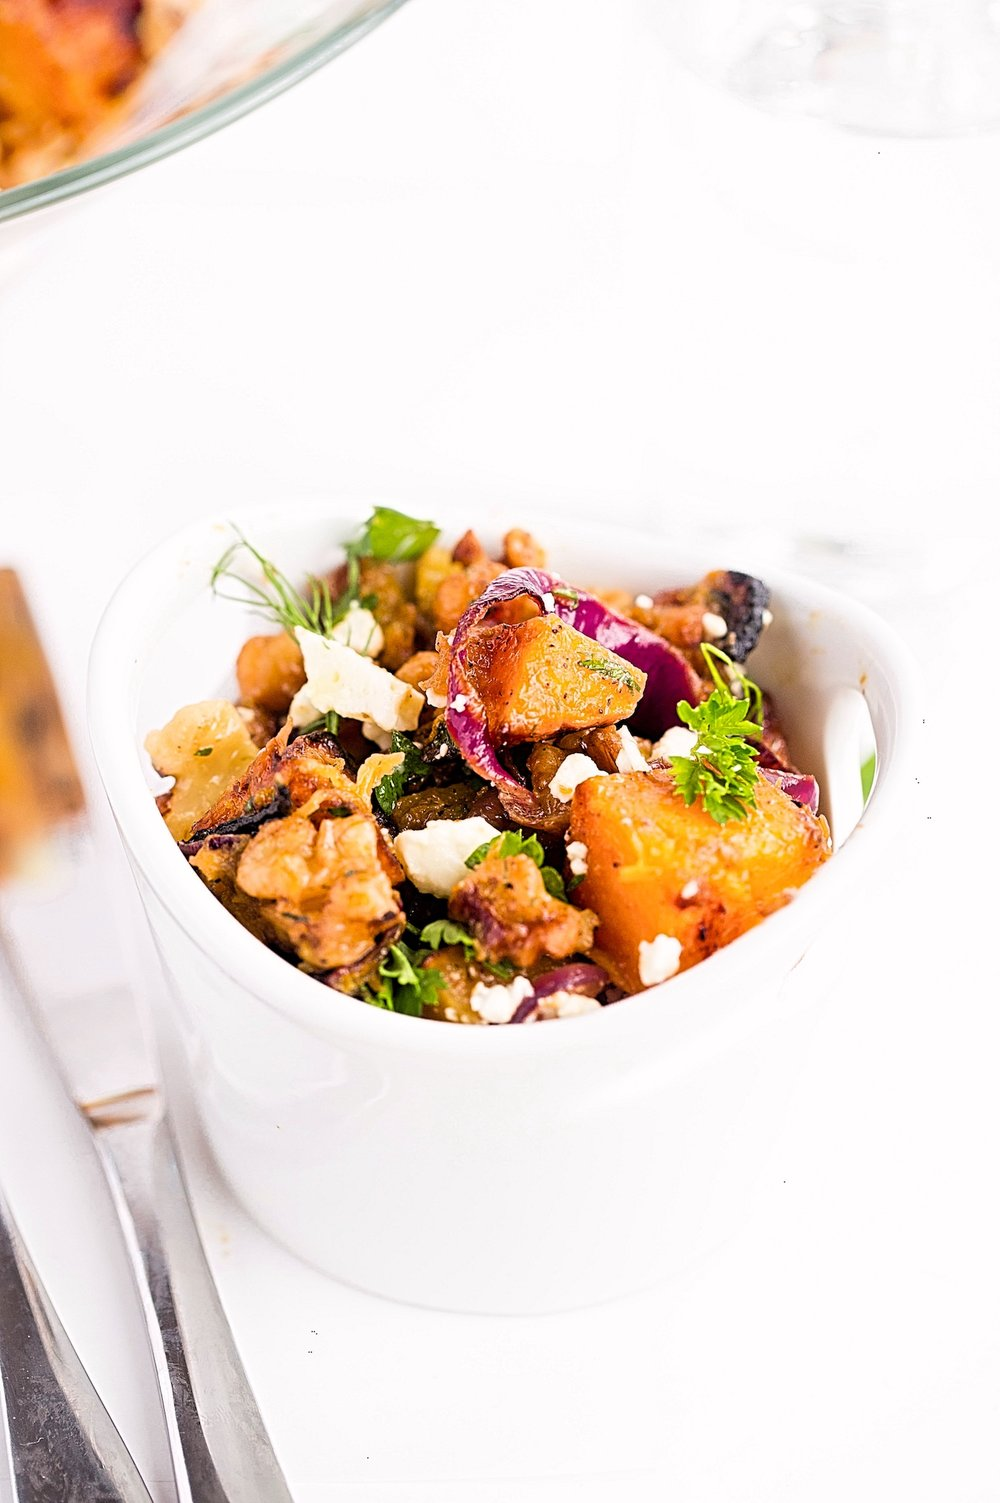 Herby Roasted Squash Red Onion Chickpea Salad: you'll want to make this wholesome, cozy butternut squash salad tossed in an herb-filled, tasty dressing all winter long. | TrufflesandTrends.com